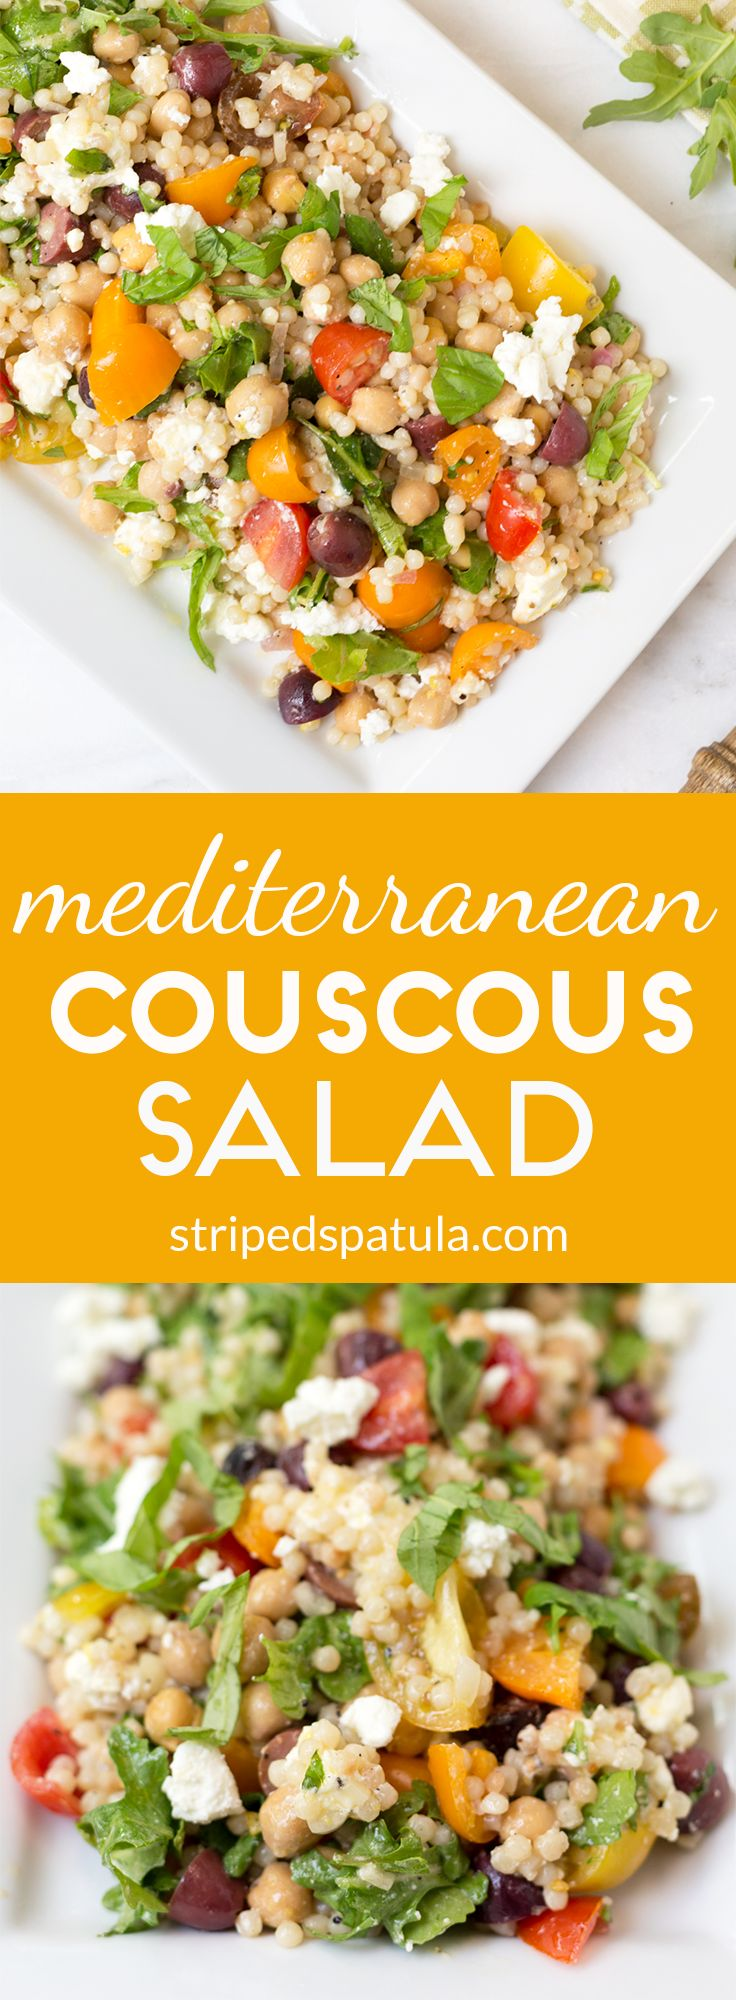 This couscous salad is a bright and fresh side dish or meatless main dish that's perfect for a weeknight dinner or easy summer entertaining!: